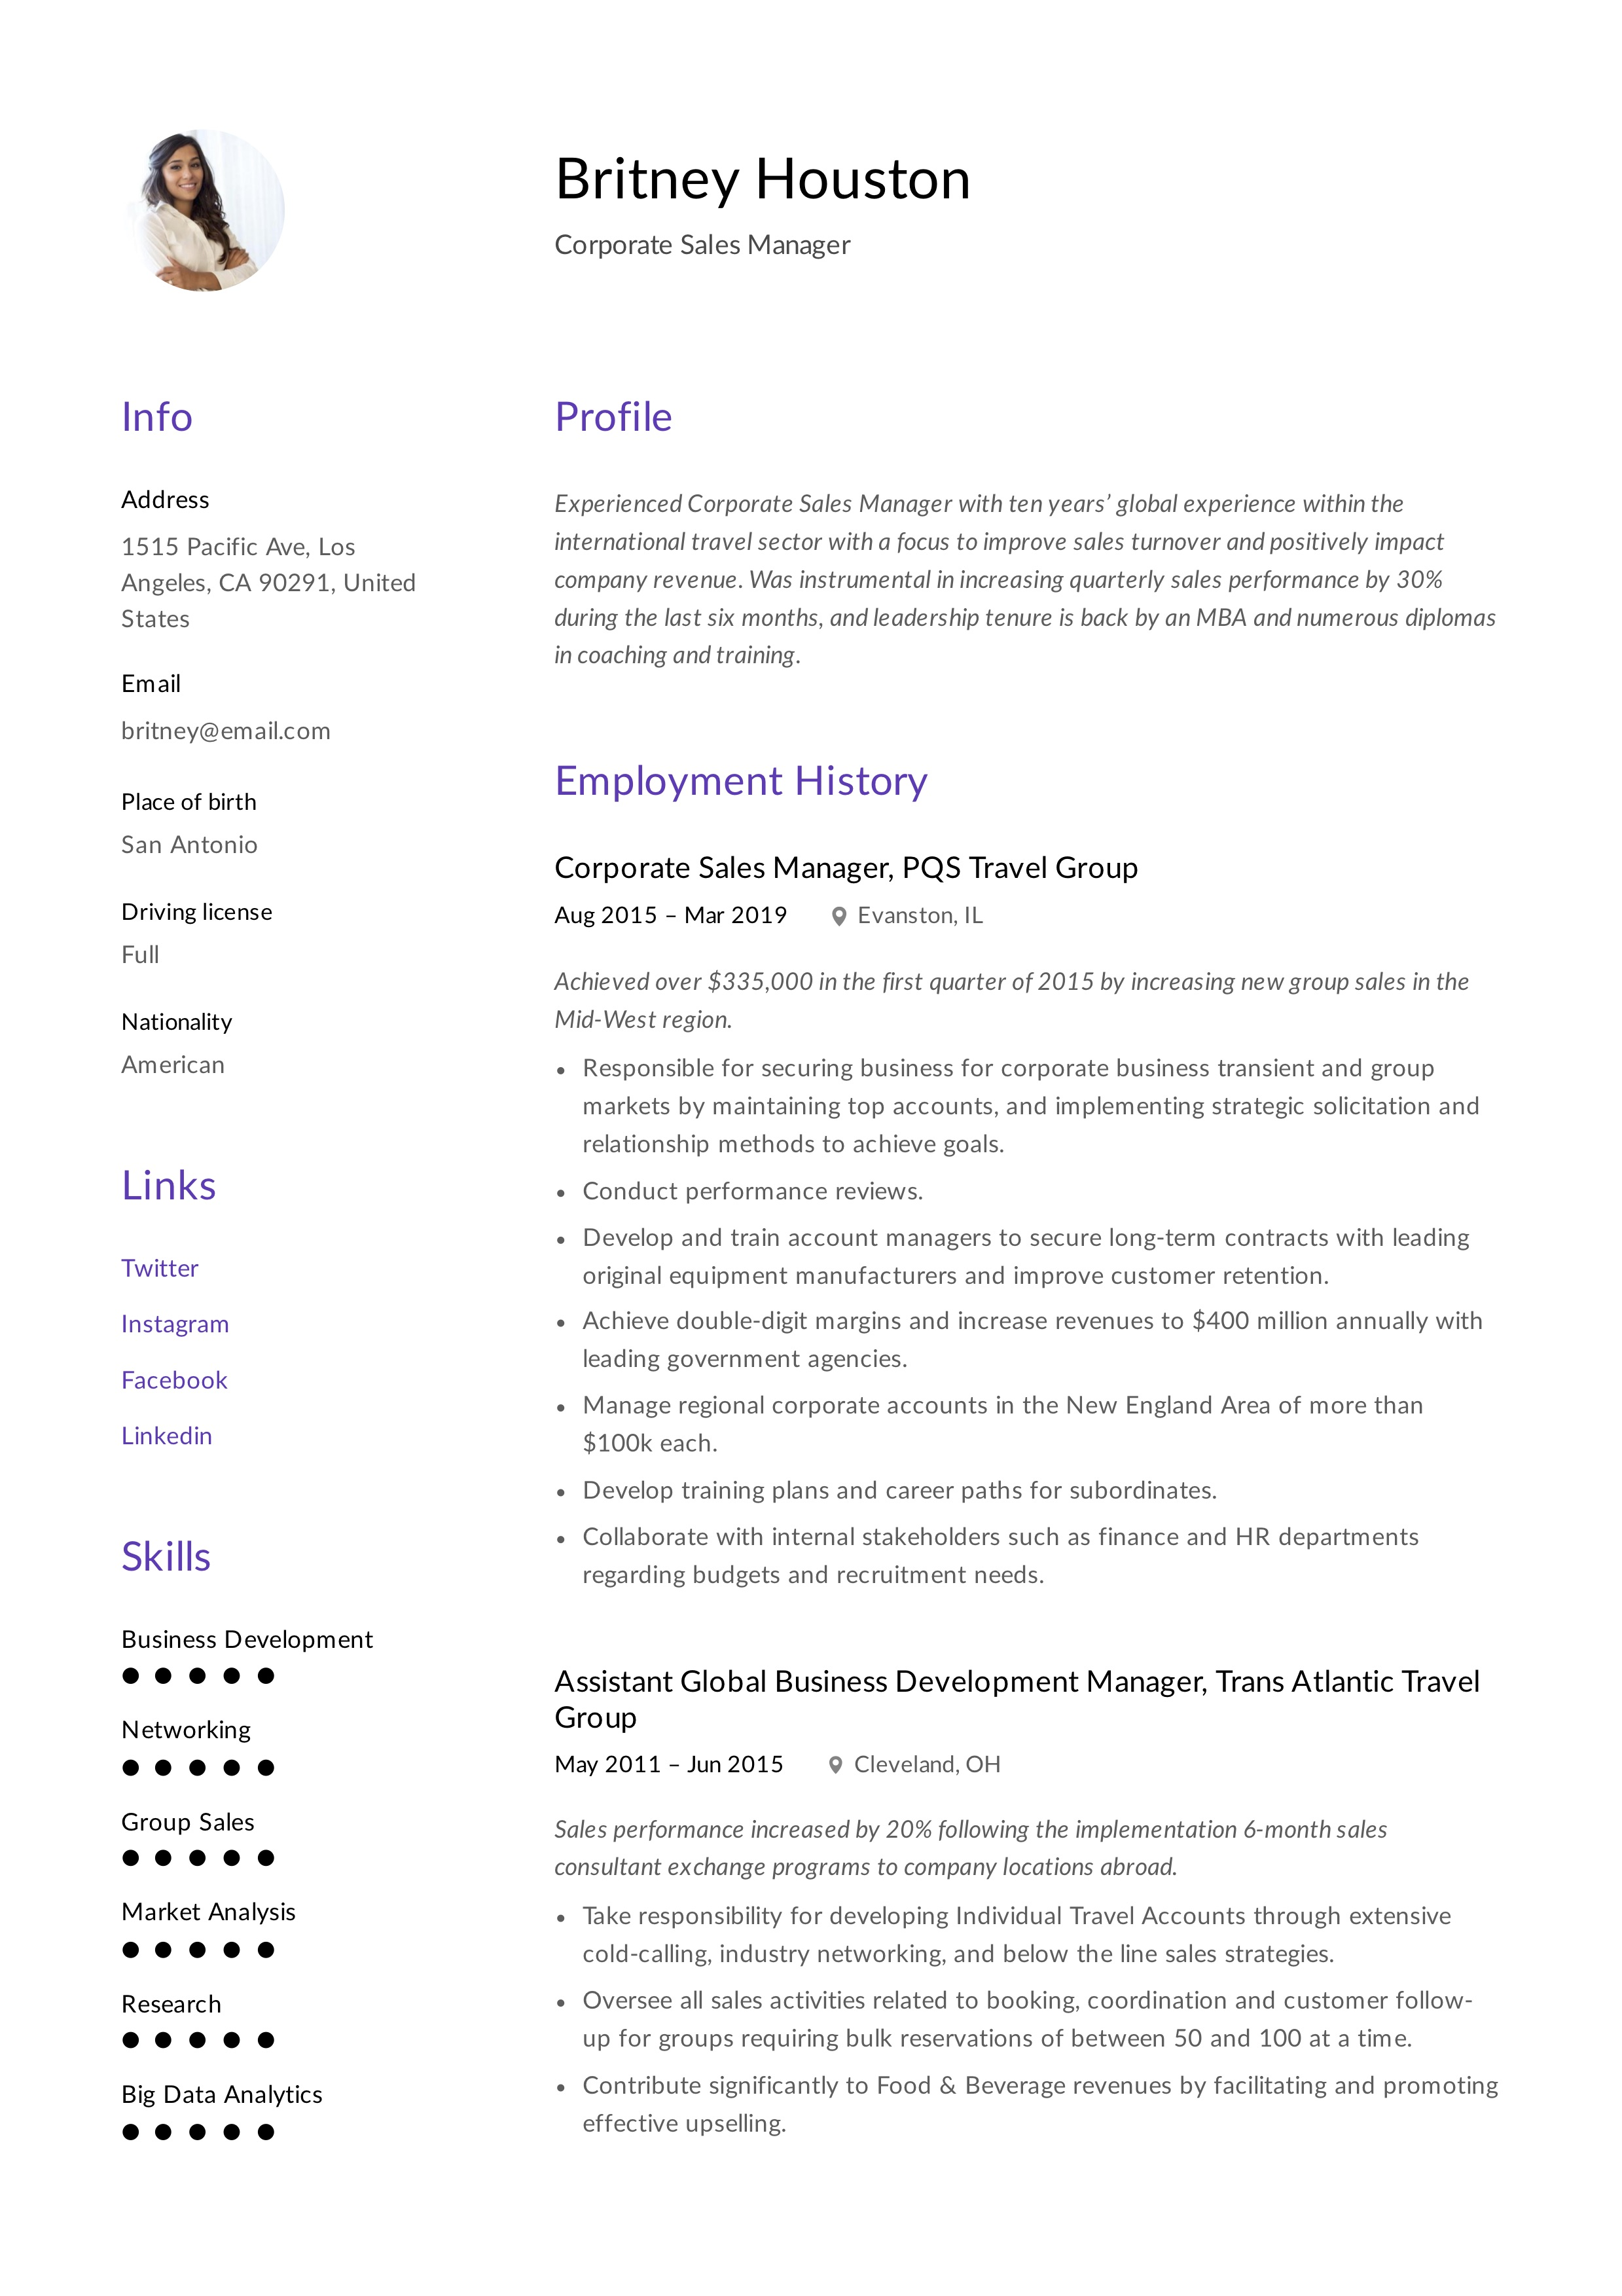 Minimal Deisgn Corporate Sales Manager Resume